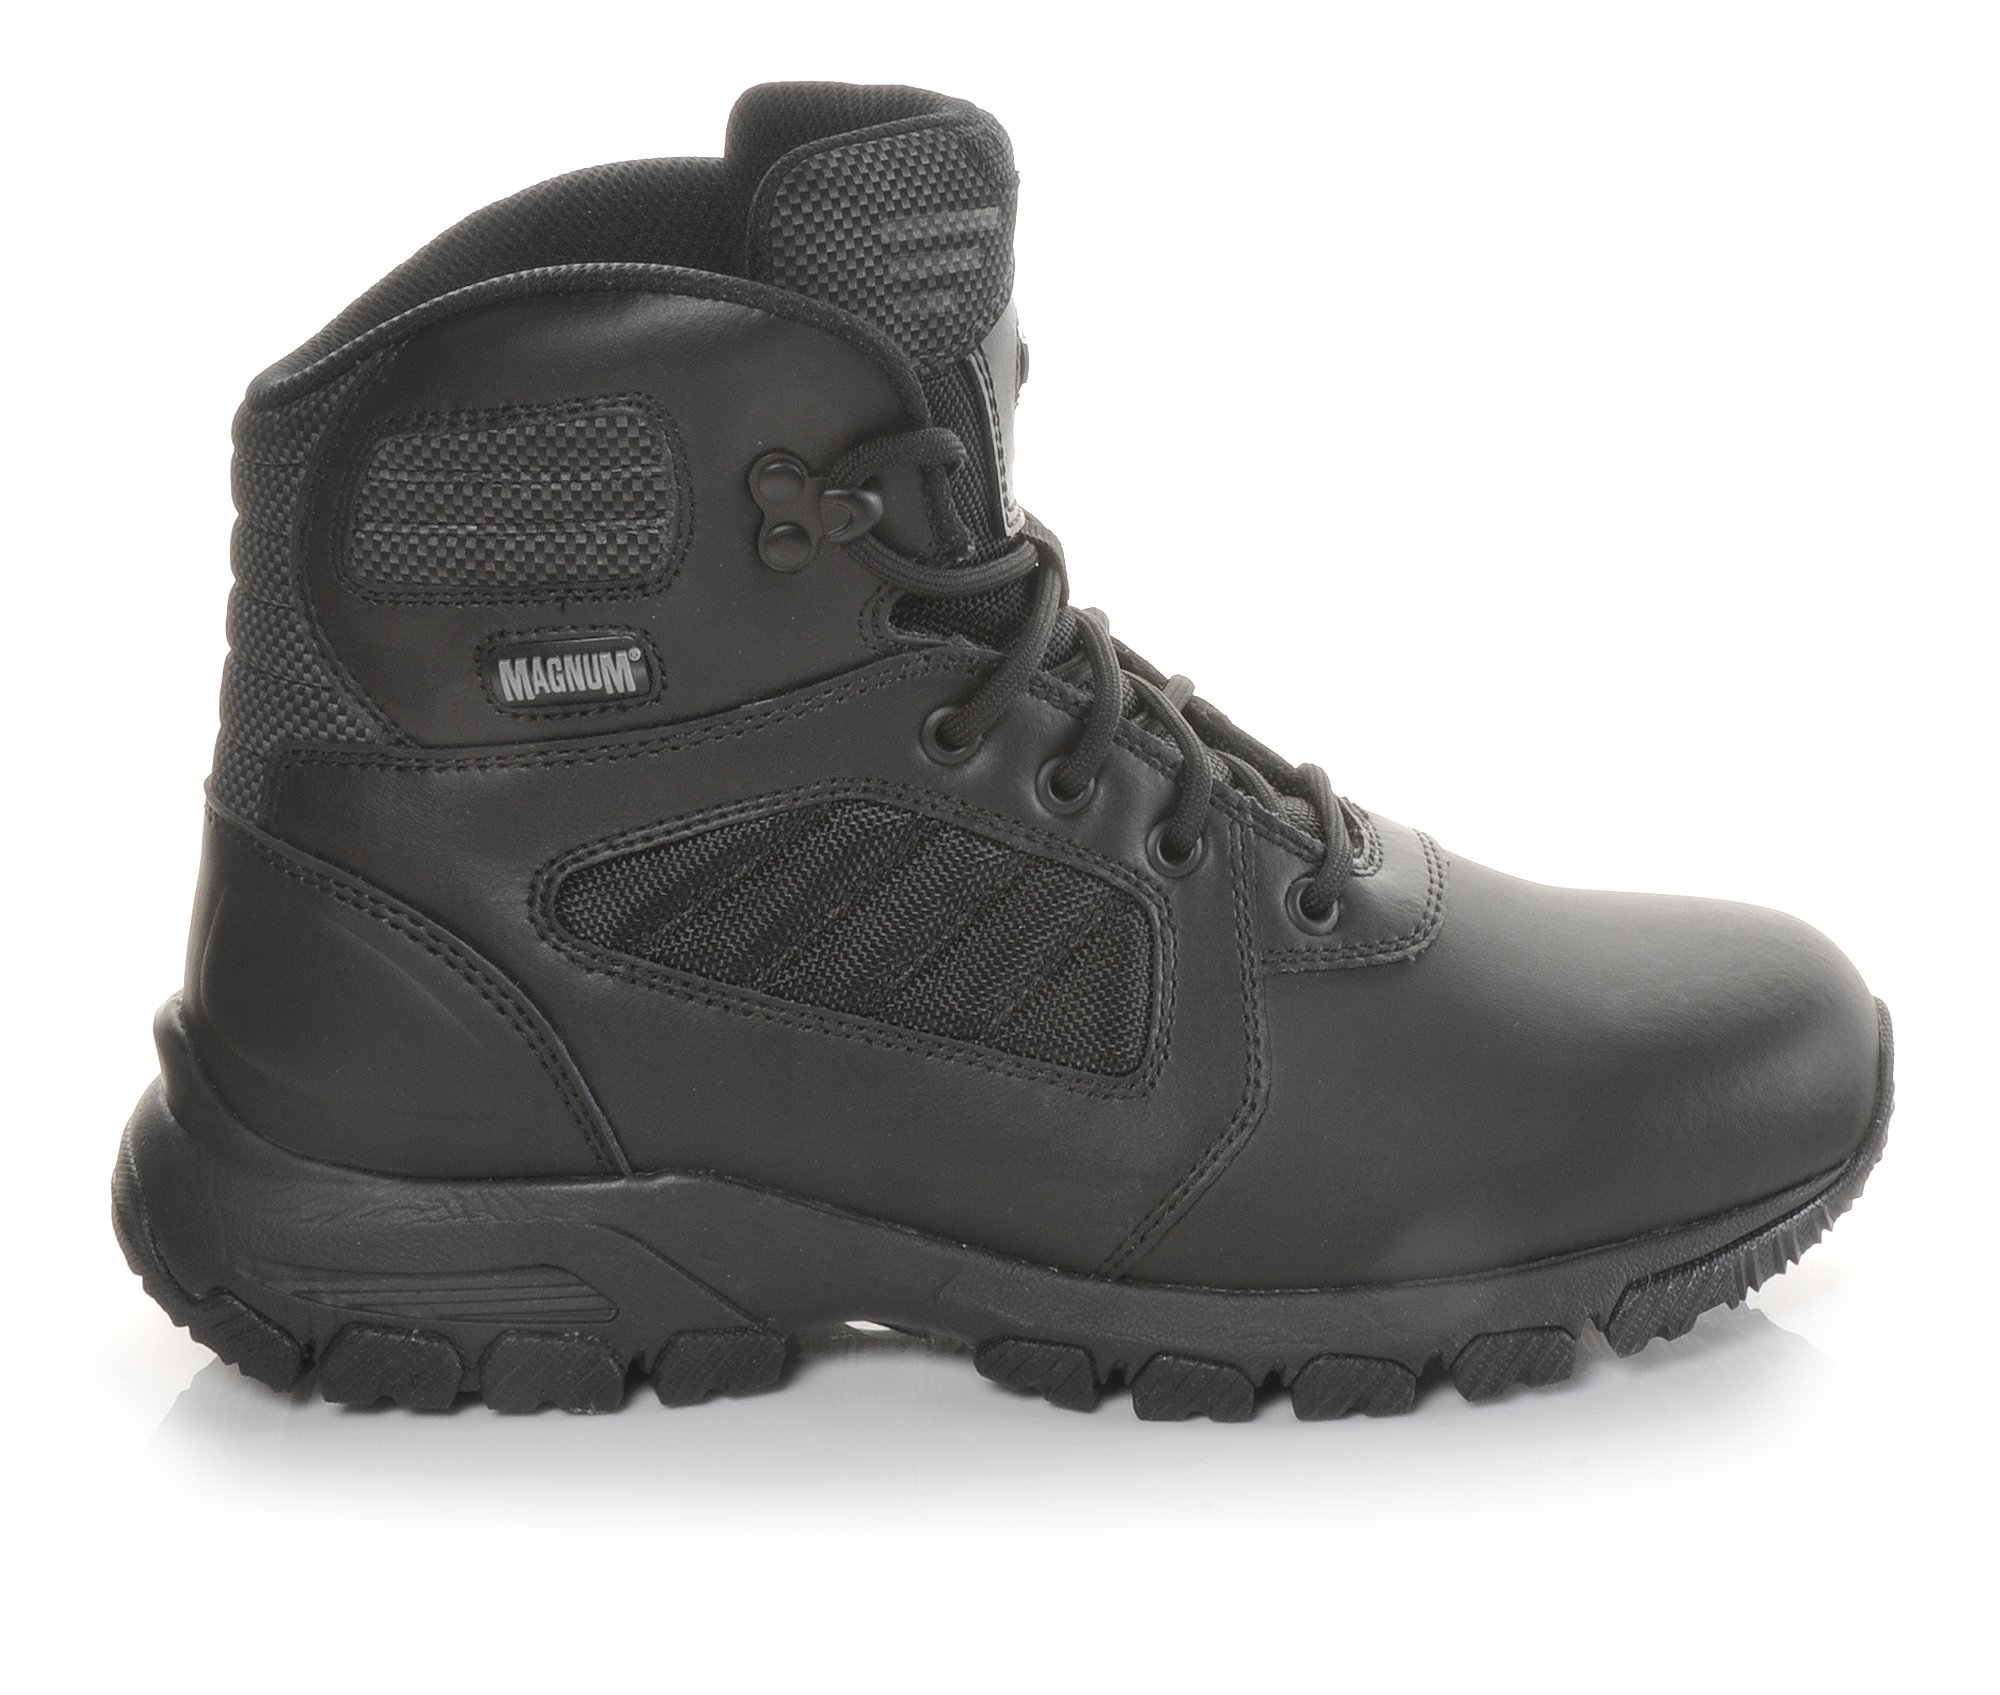 Magnum Response III 6.0 Men's Boots (Black Leather/Fabric)